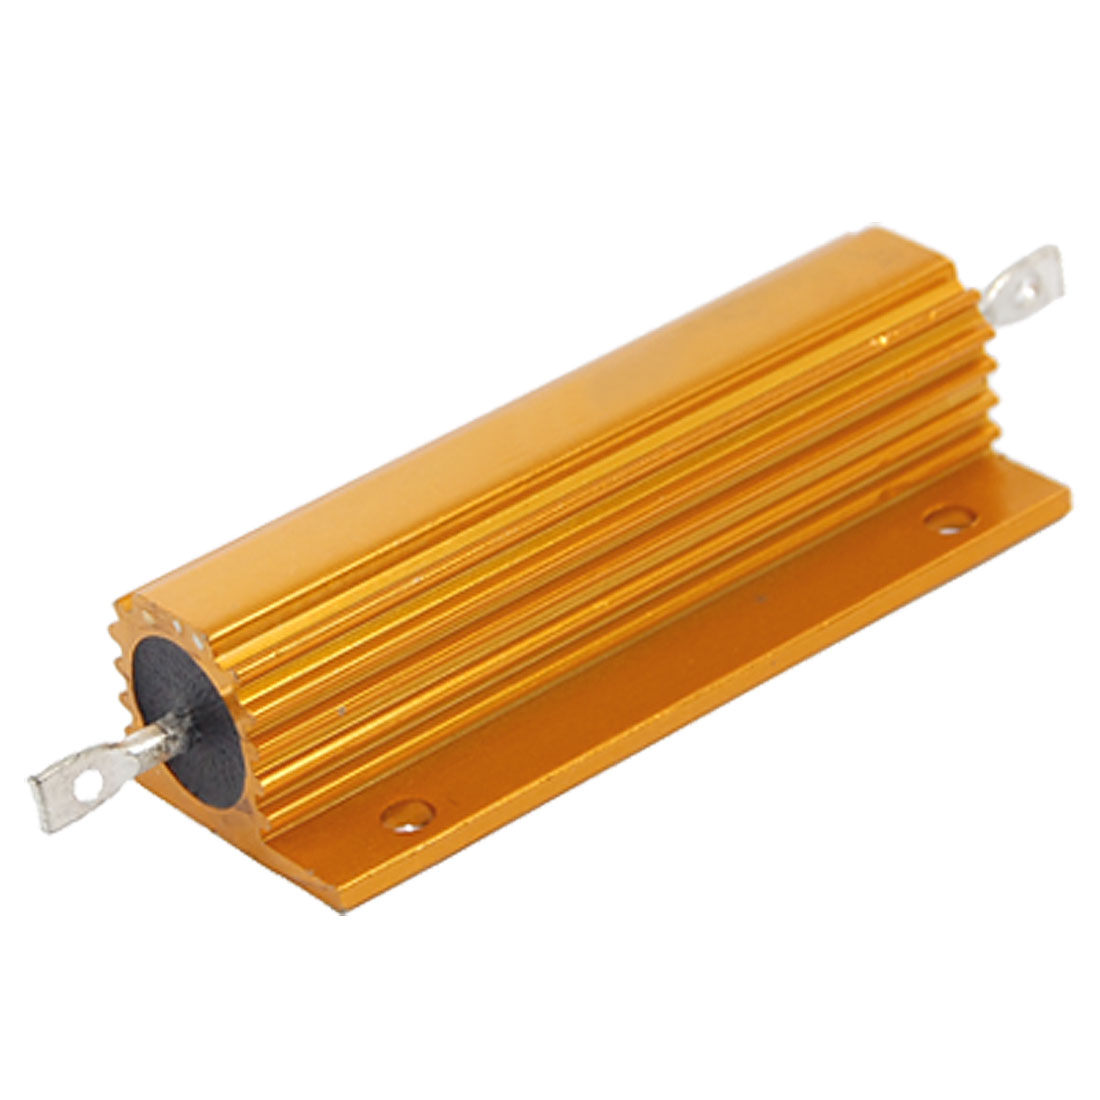 100W Power Mounted Aluminum Shell Resistor 5% 0.5 Ohm